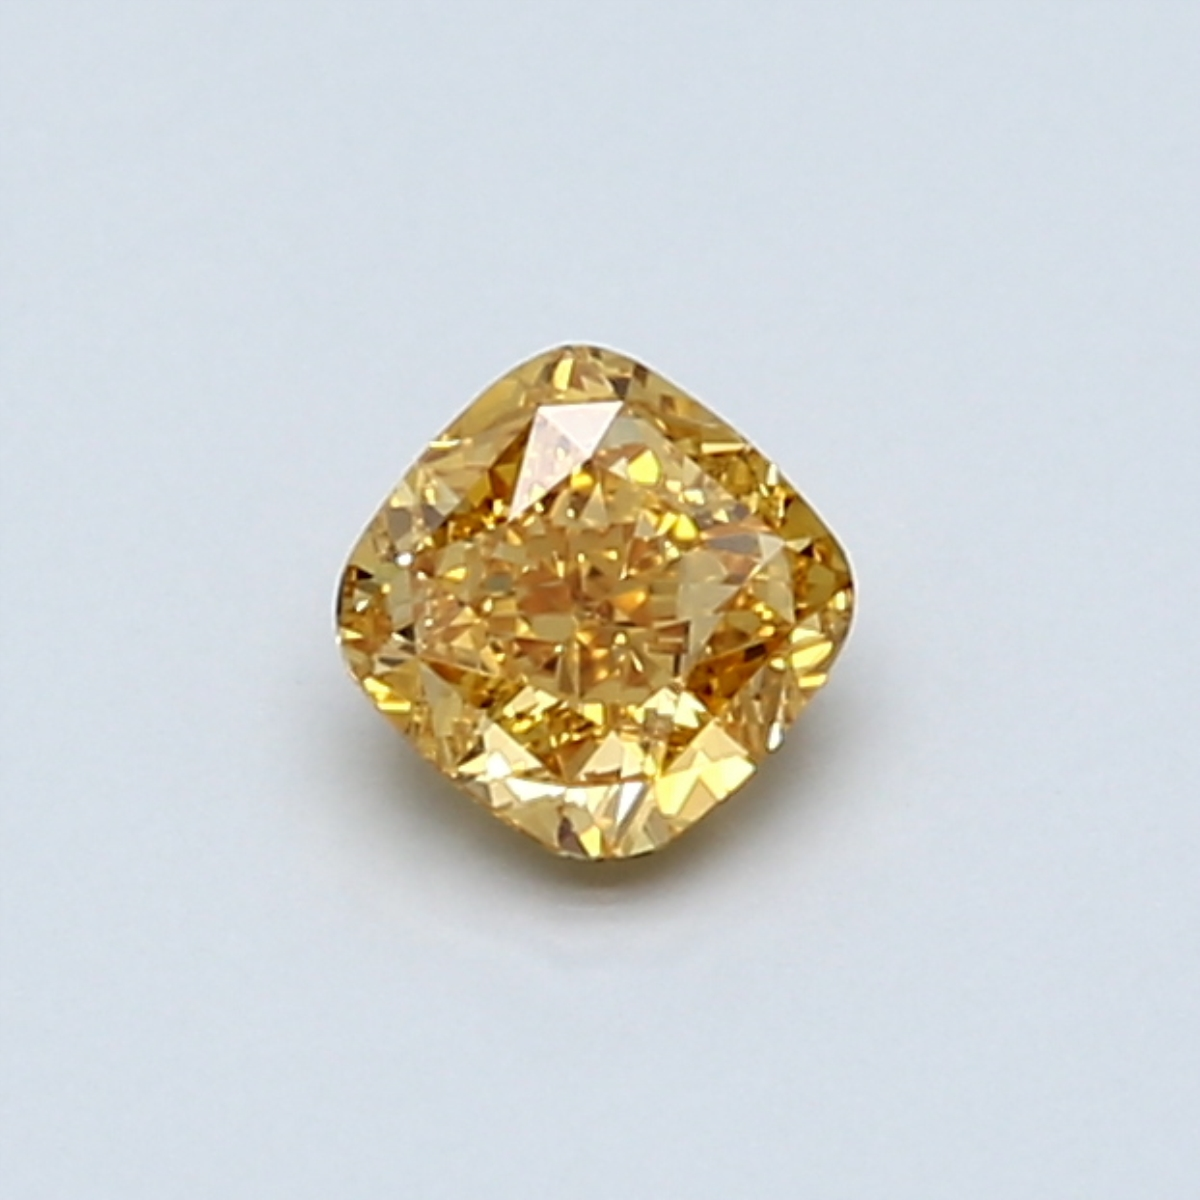 0.43-Carat Vivid Yellow-orange Cushion Cut Diamond